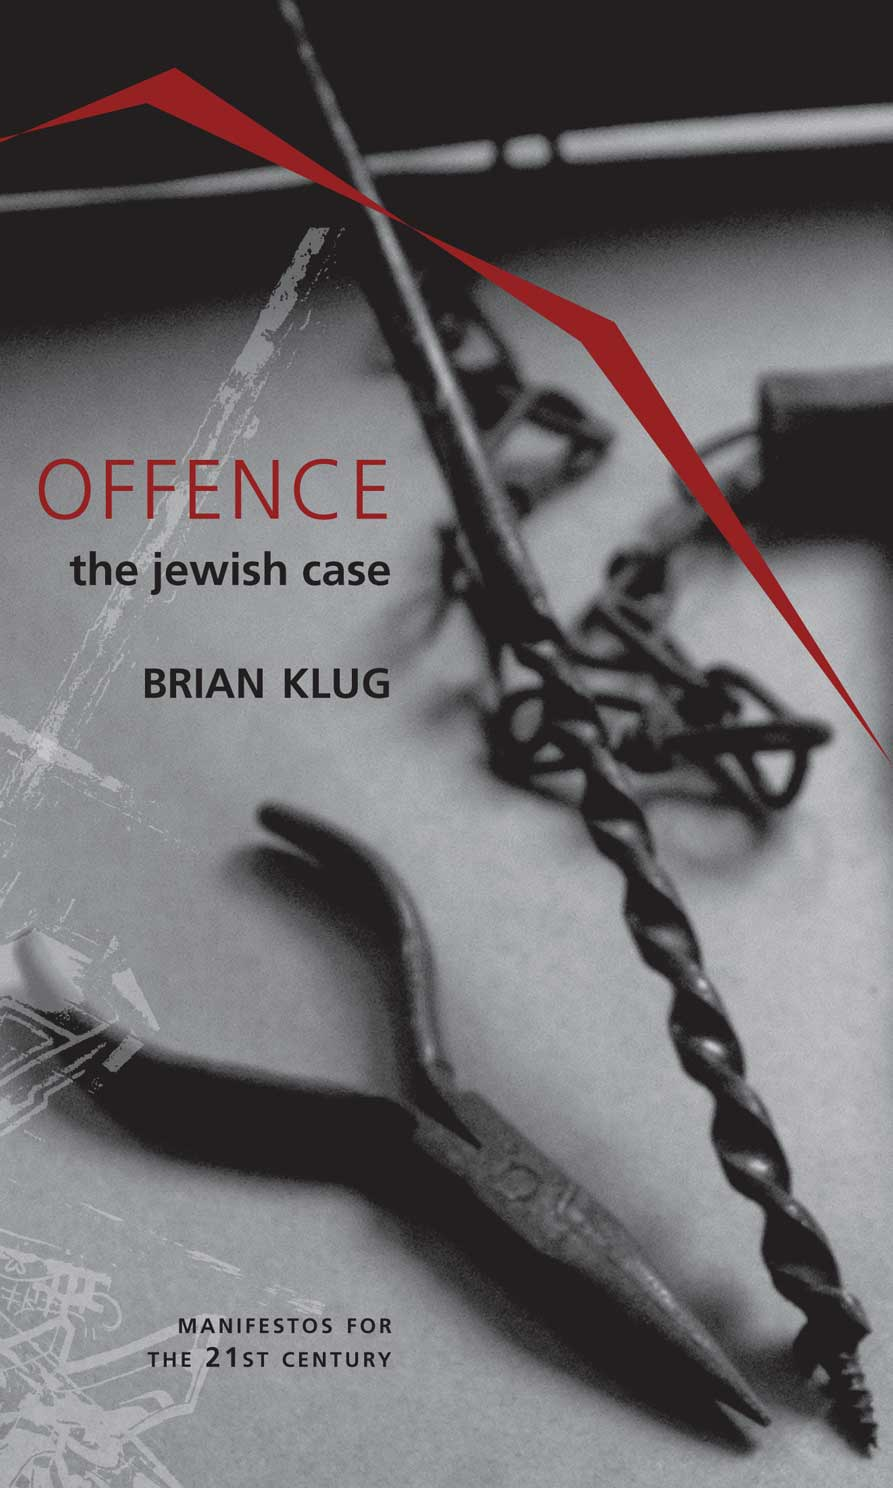 Offence: The Jewish Case by Brian Klug | Seagull Books